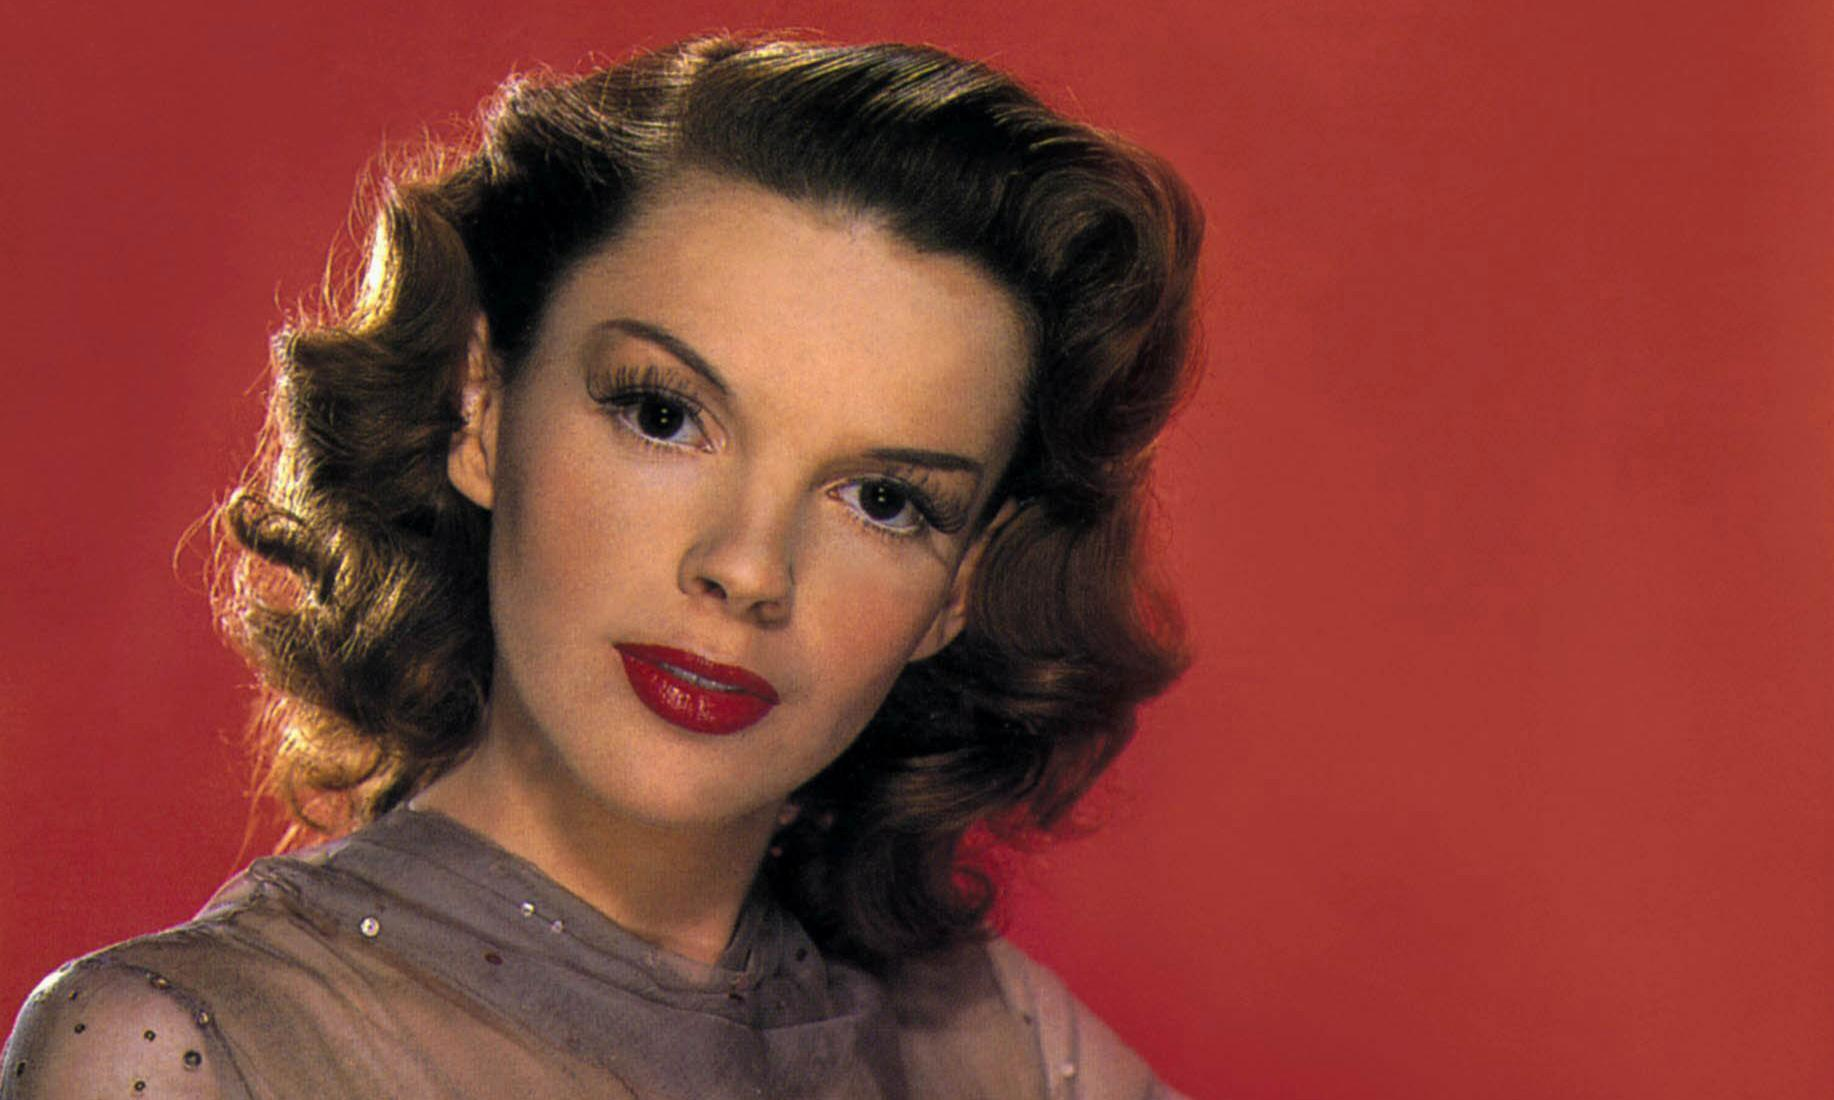 Judy Garland died from accidental drug overdose – archive, 26 January 1969